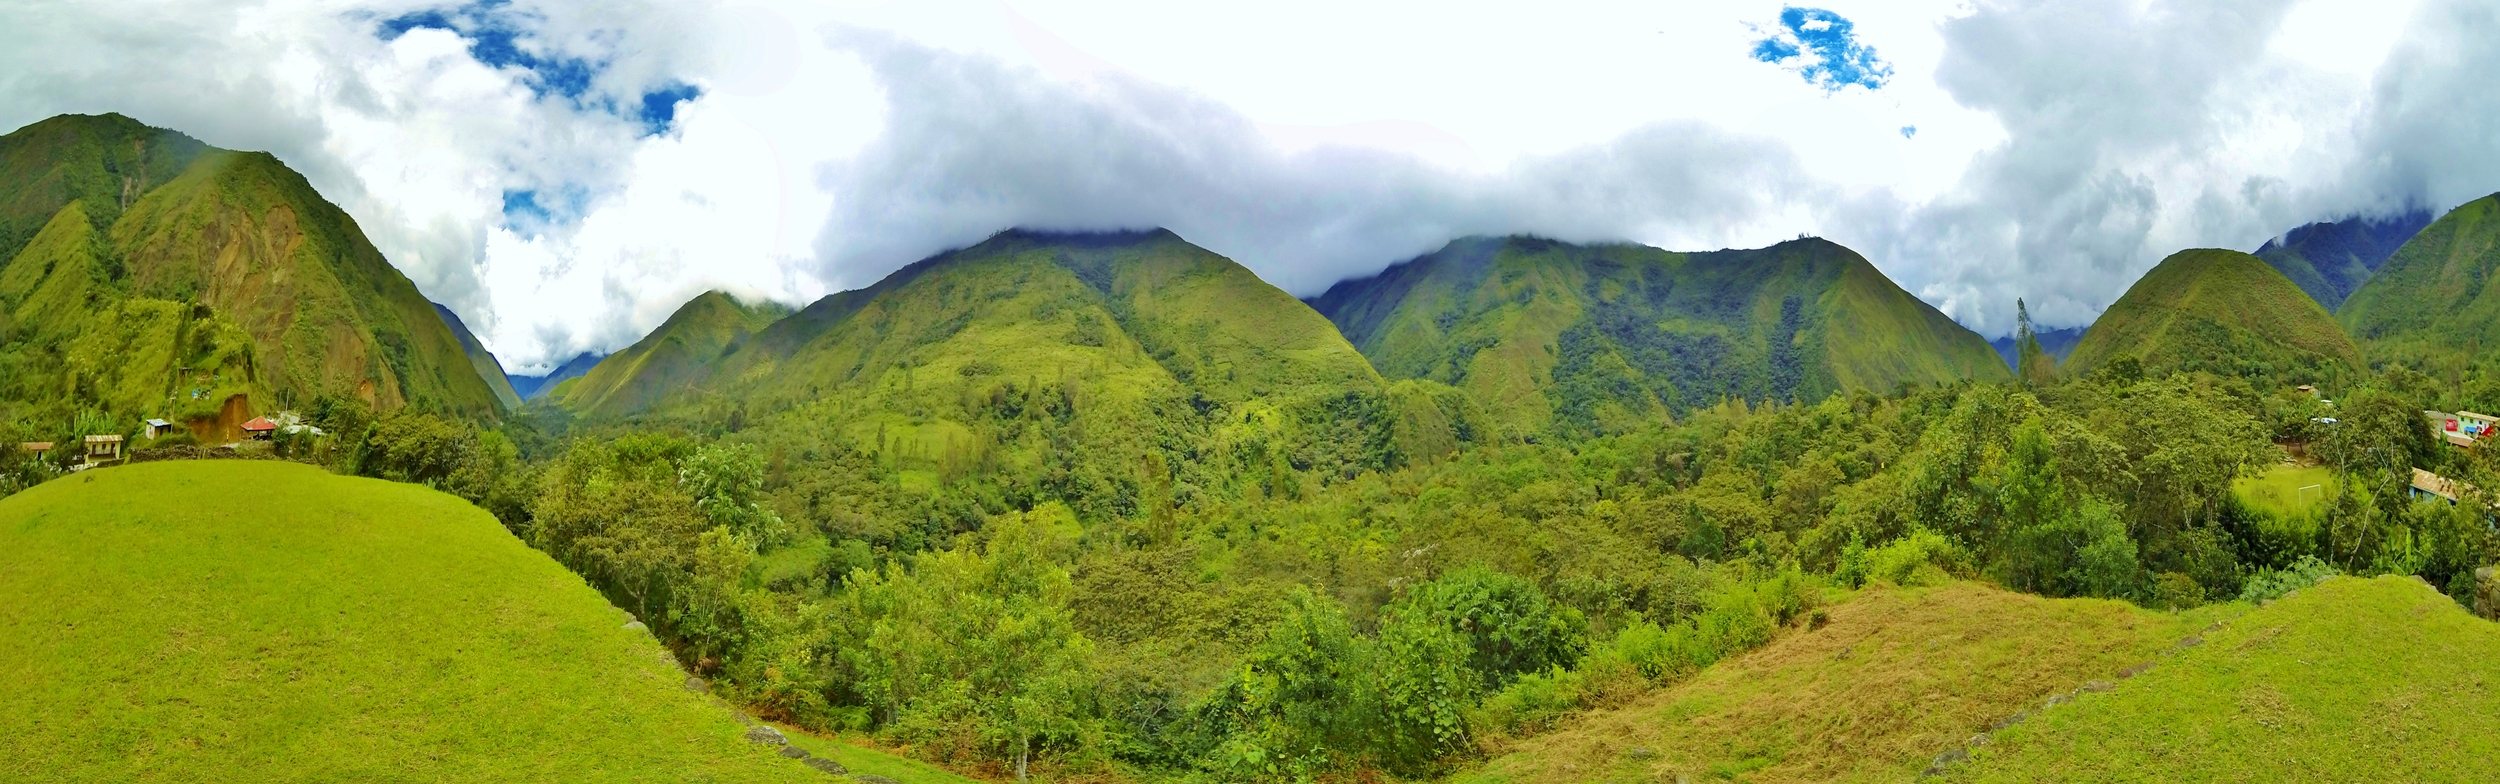 Panorama view from the top of Wamanmarka ruins of theLuq'umayu river valley